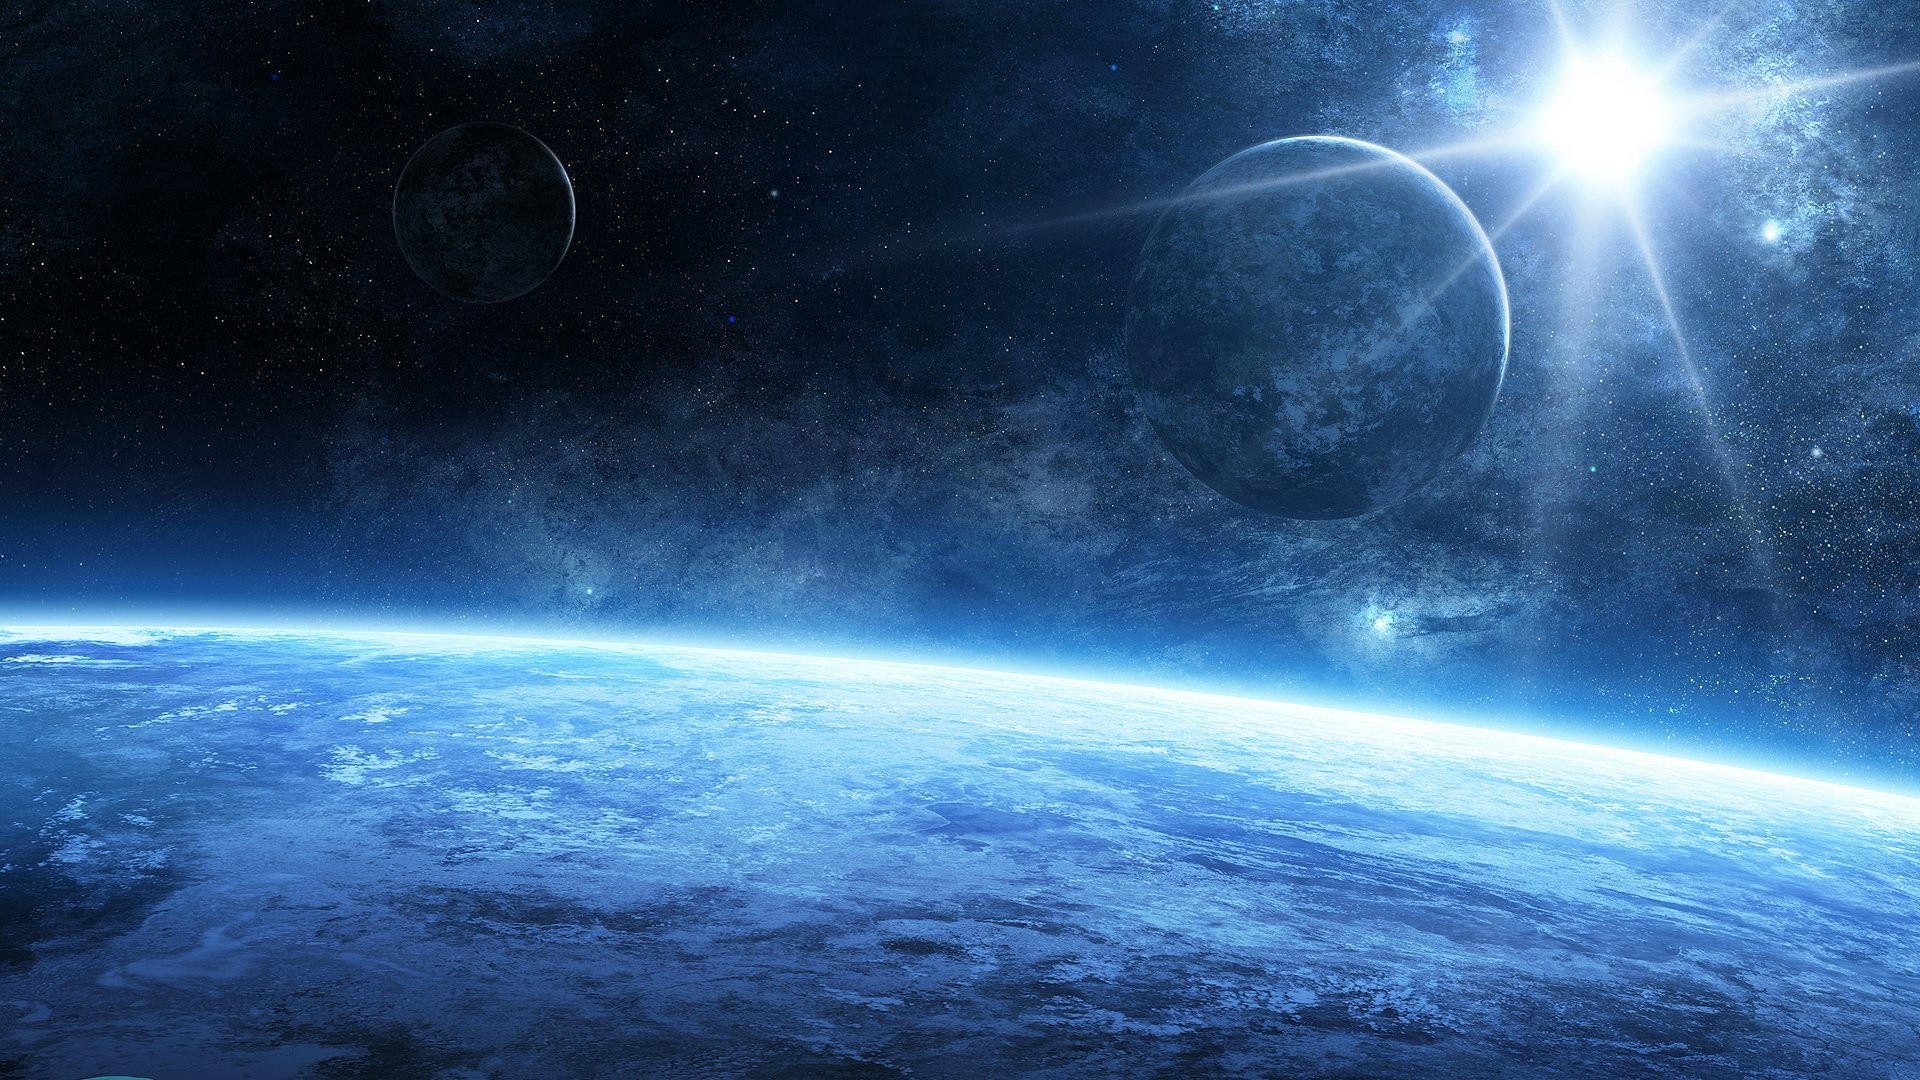 6 Awesome Cosmos Inspired Hd Wallpapers: Colorful Space Wallpapers (73+ Images